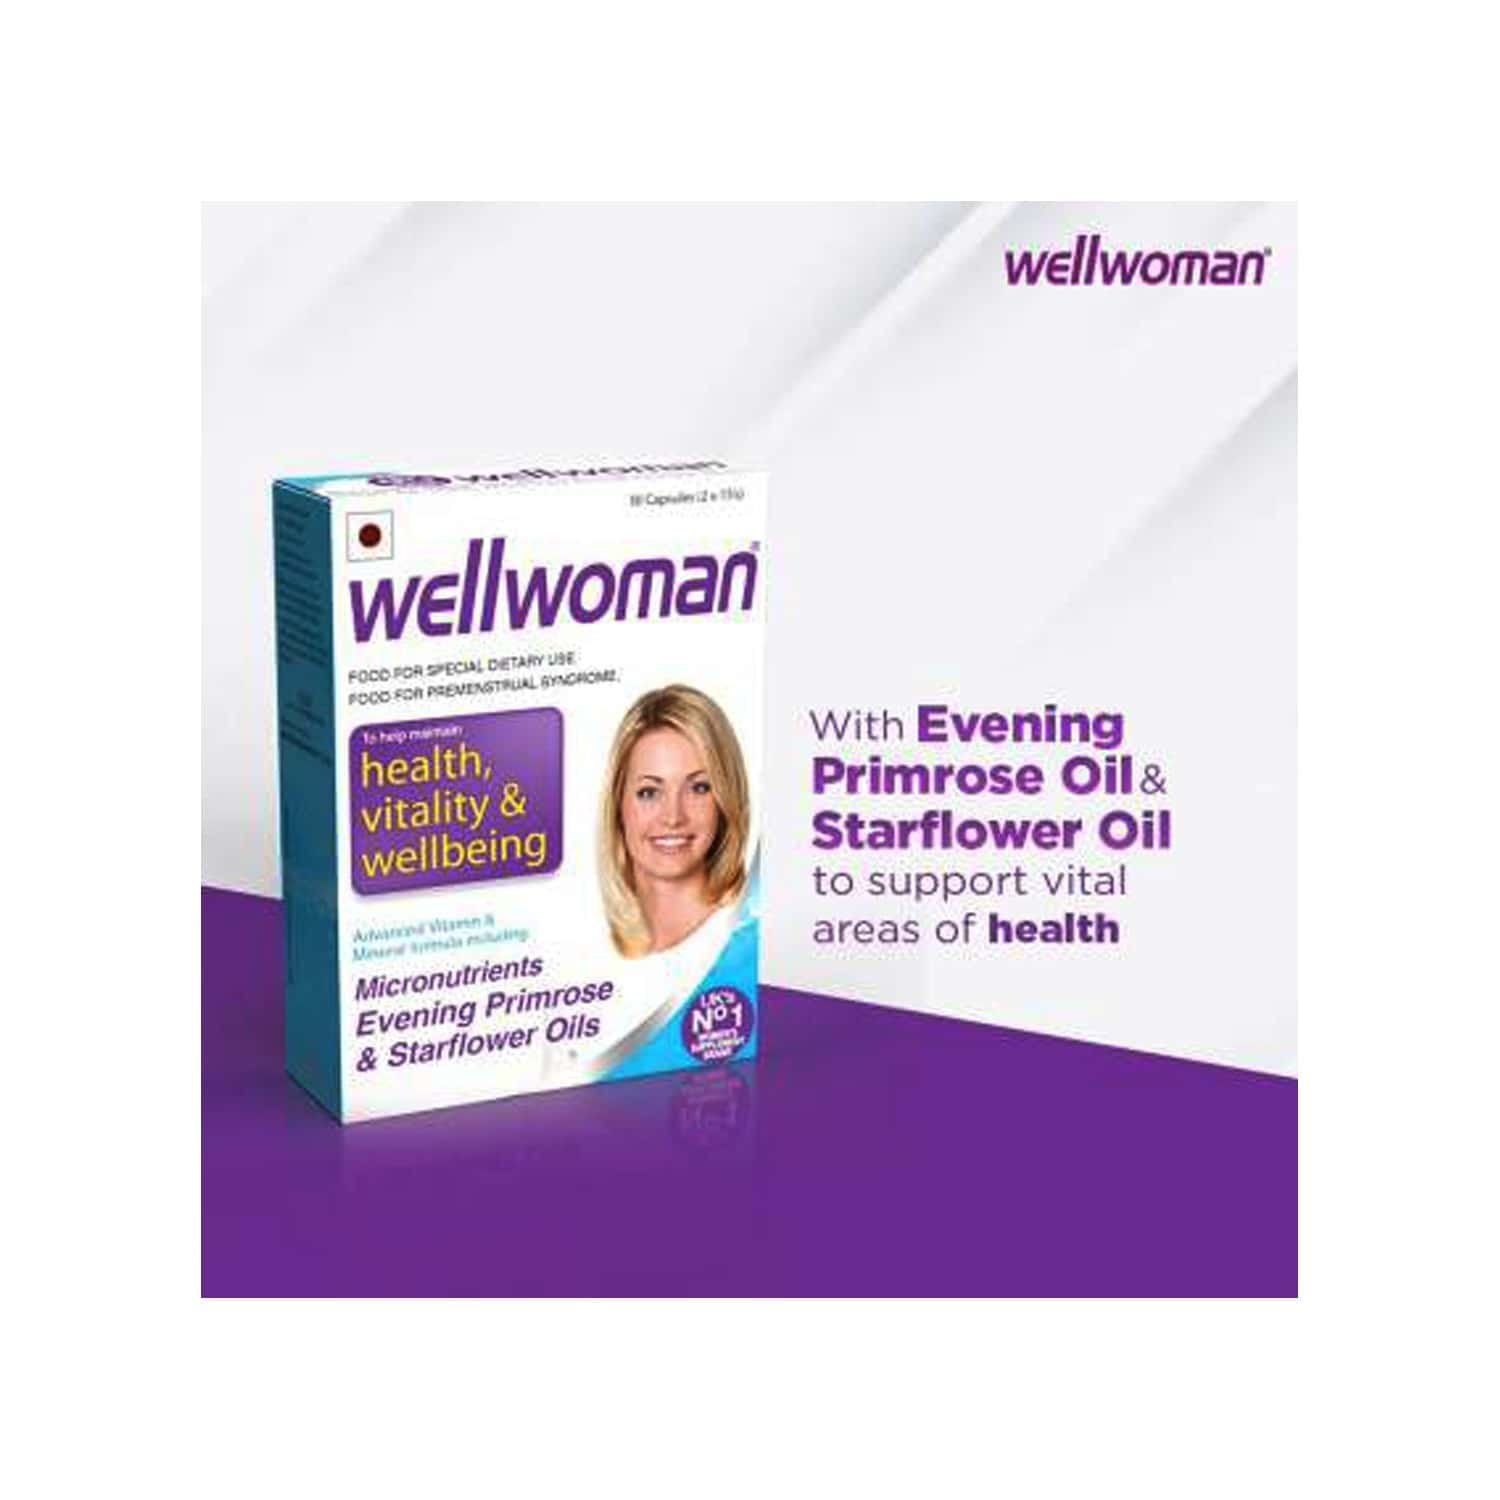 Wellwoman - Health Supplements (micronutrients, Evening Primrose Oil And Starflower Oil) With Wellman 30 Tablet Free